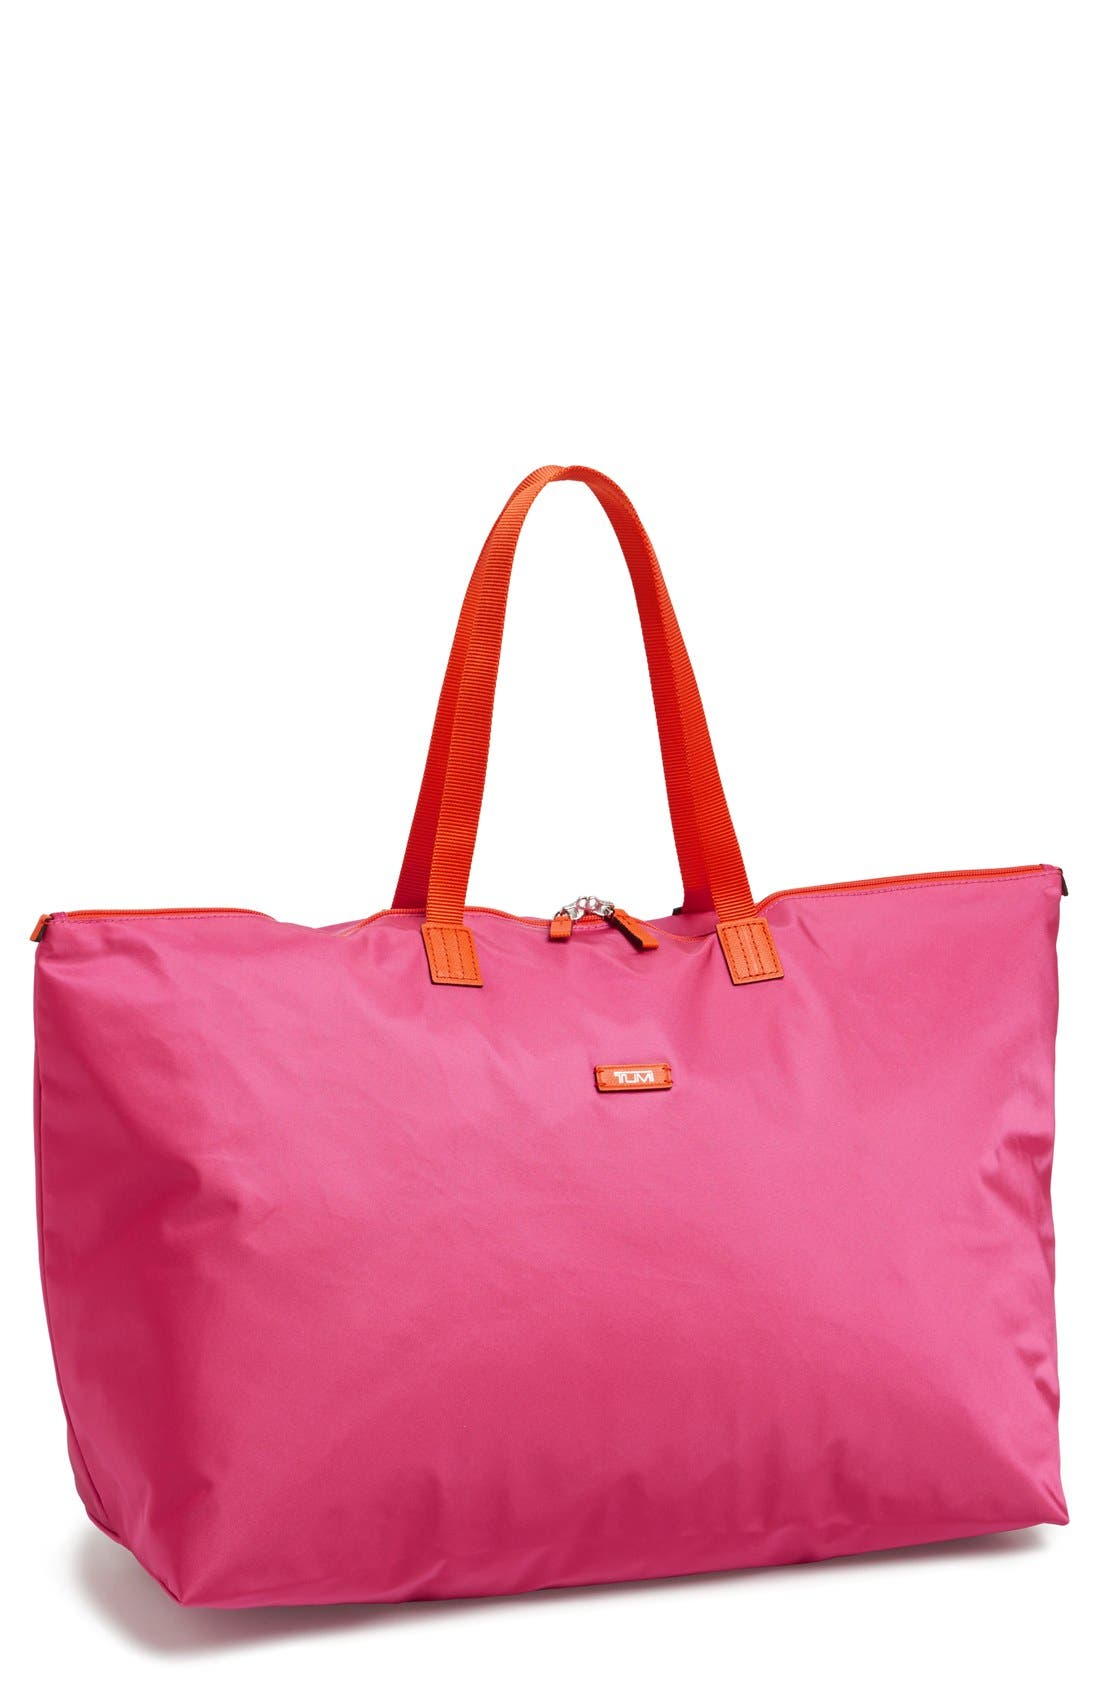 Alternate Image 1 Selected - Tumi 'Just in Case' Packable Tote